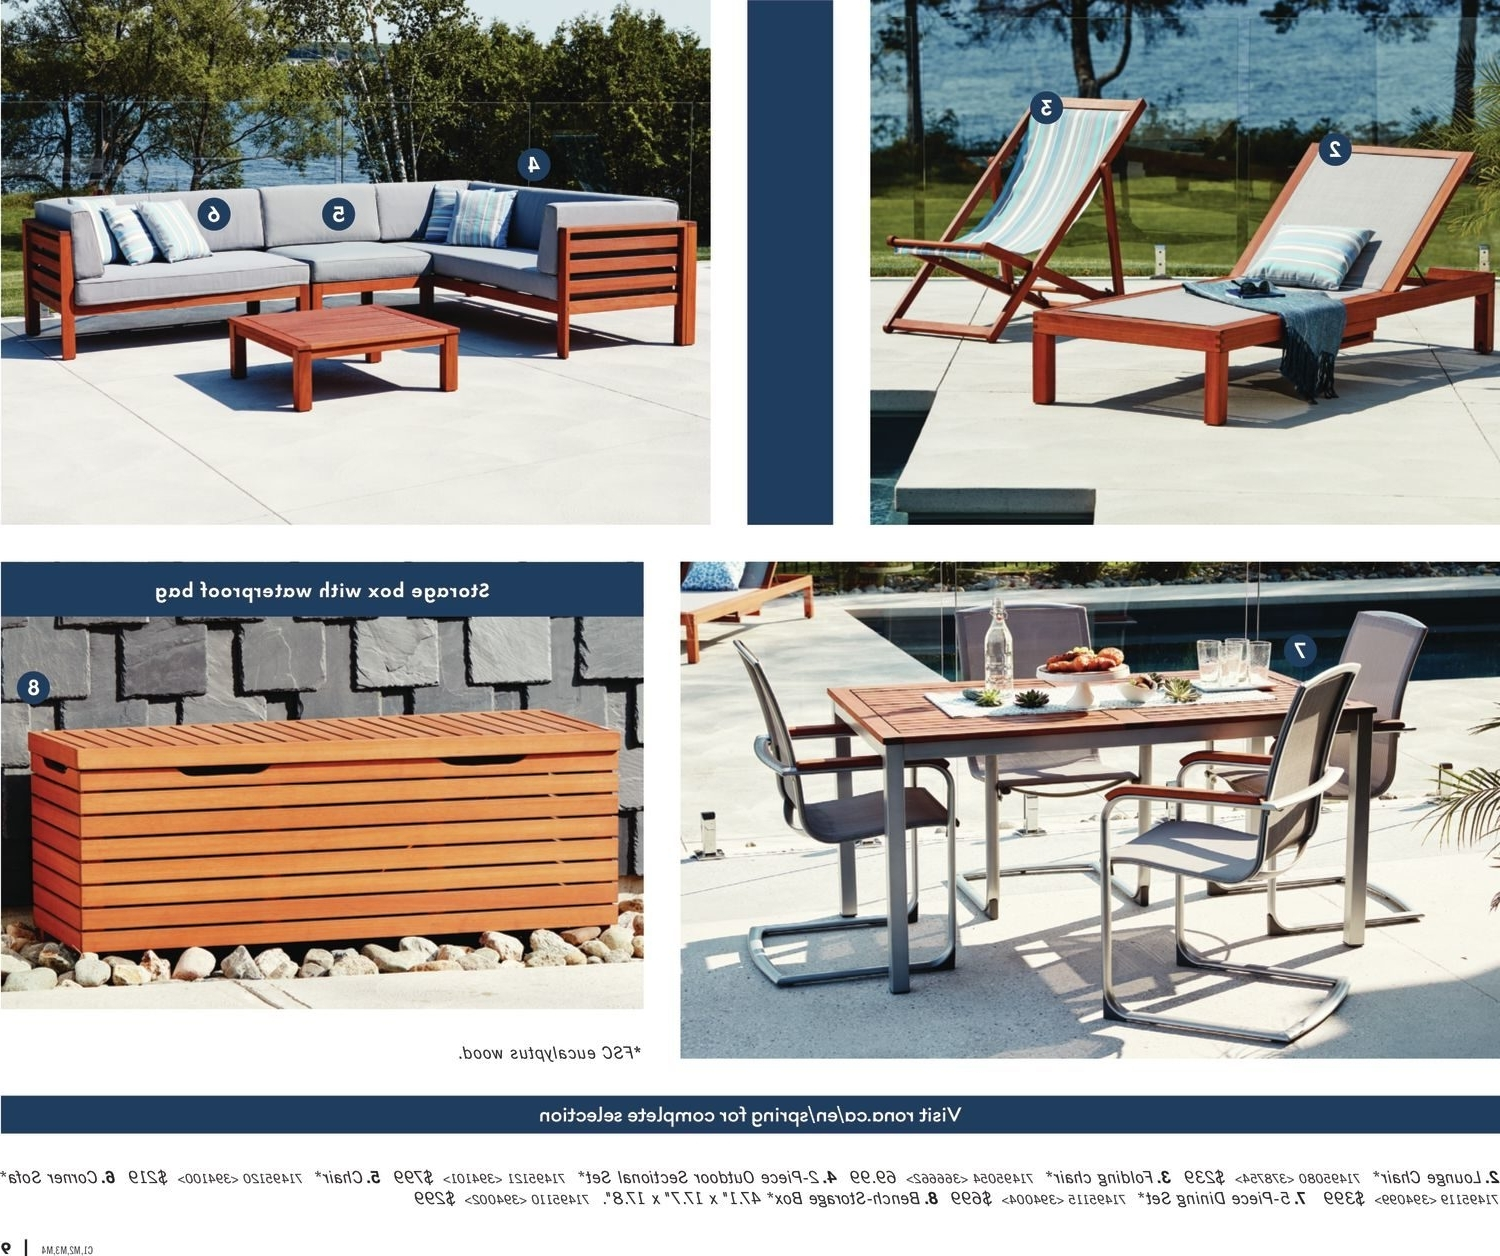 Rona Weekly Flyer – Enjoy Your Backyard – Mar 22 – Apr 25 Intended For Most Recent Rona Patio Rocking Chairs (View 3 of 15)